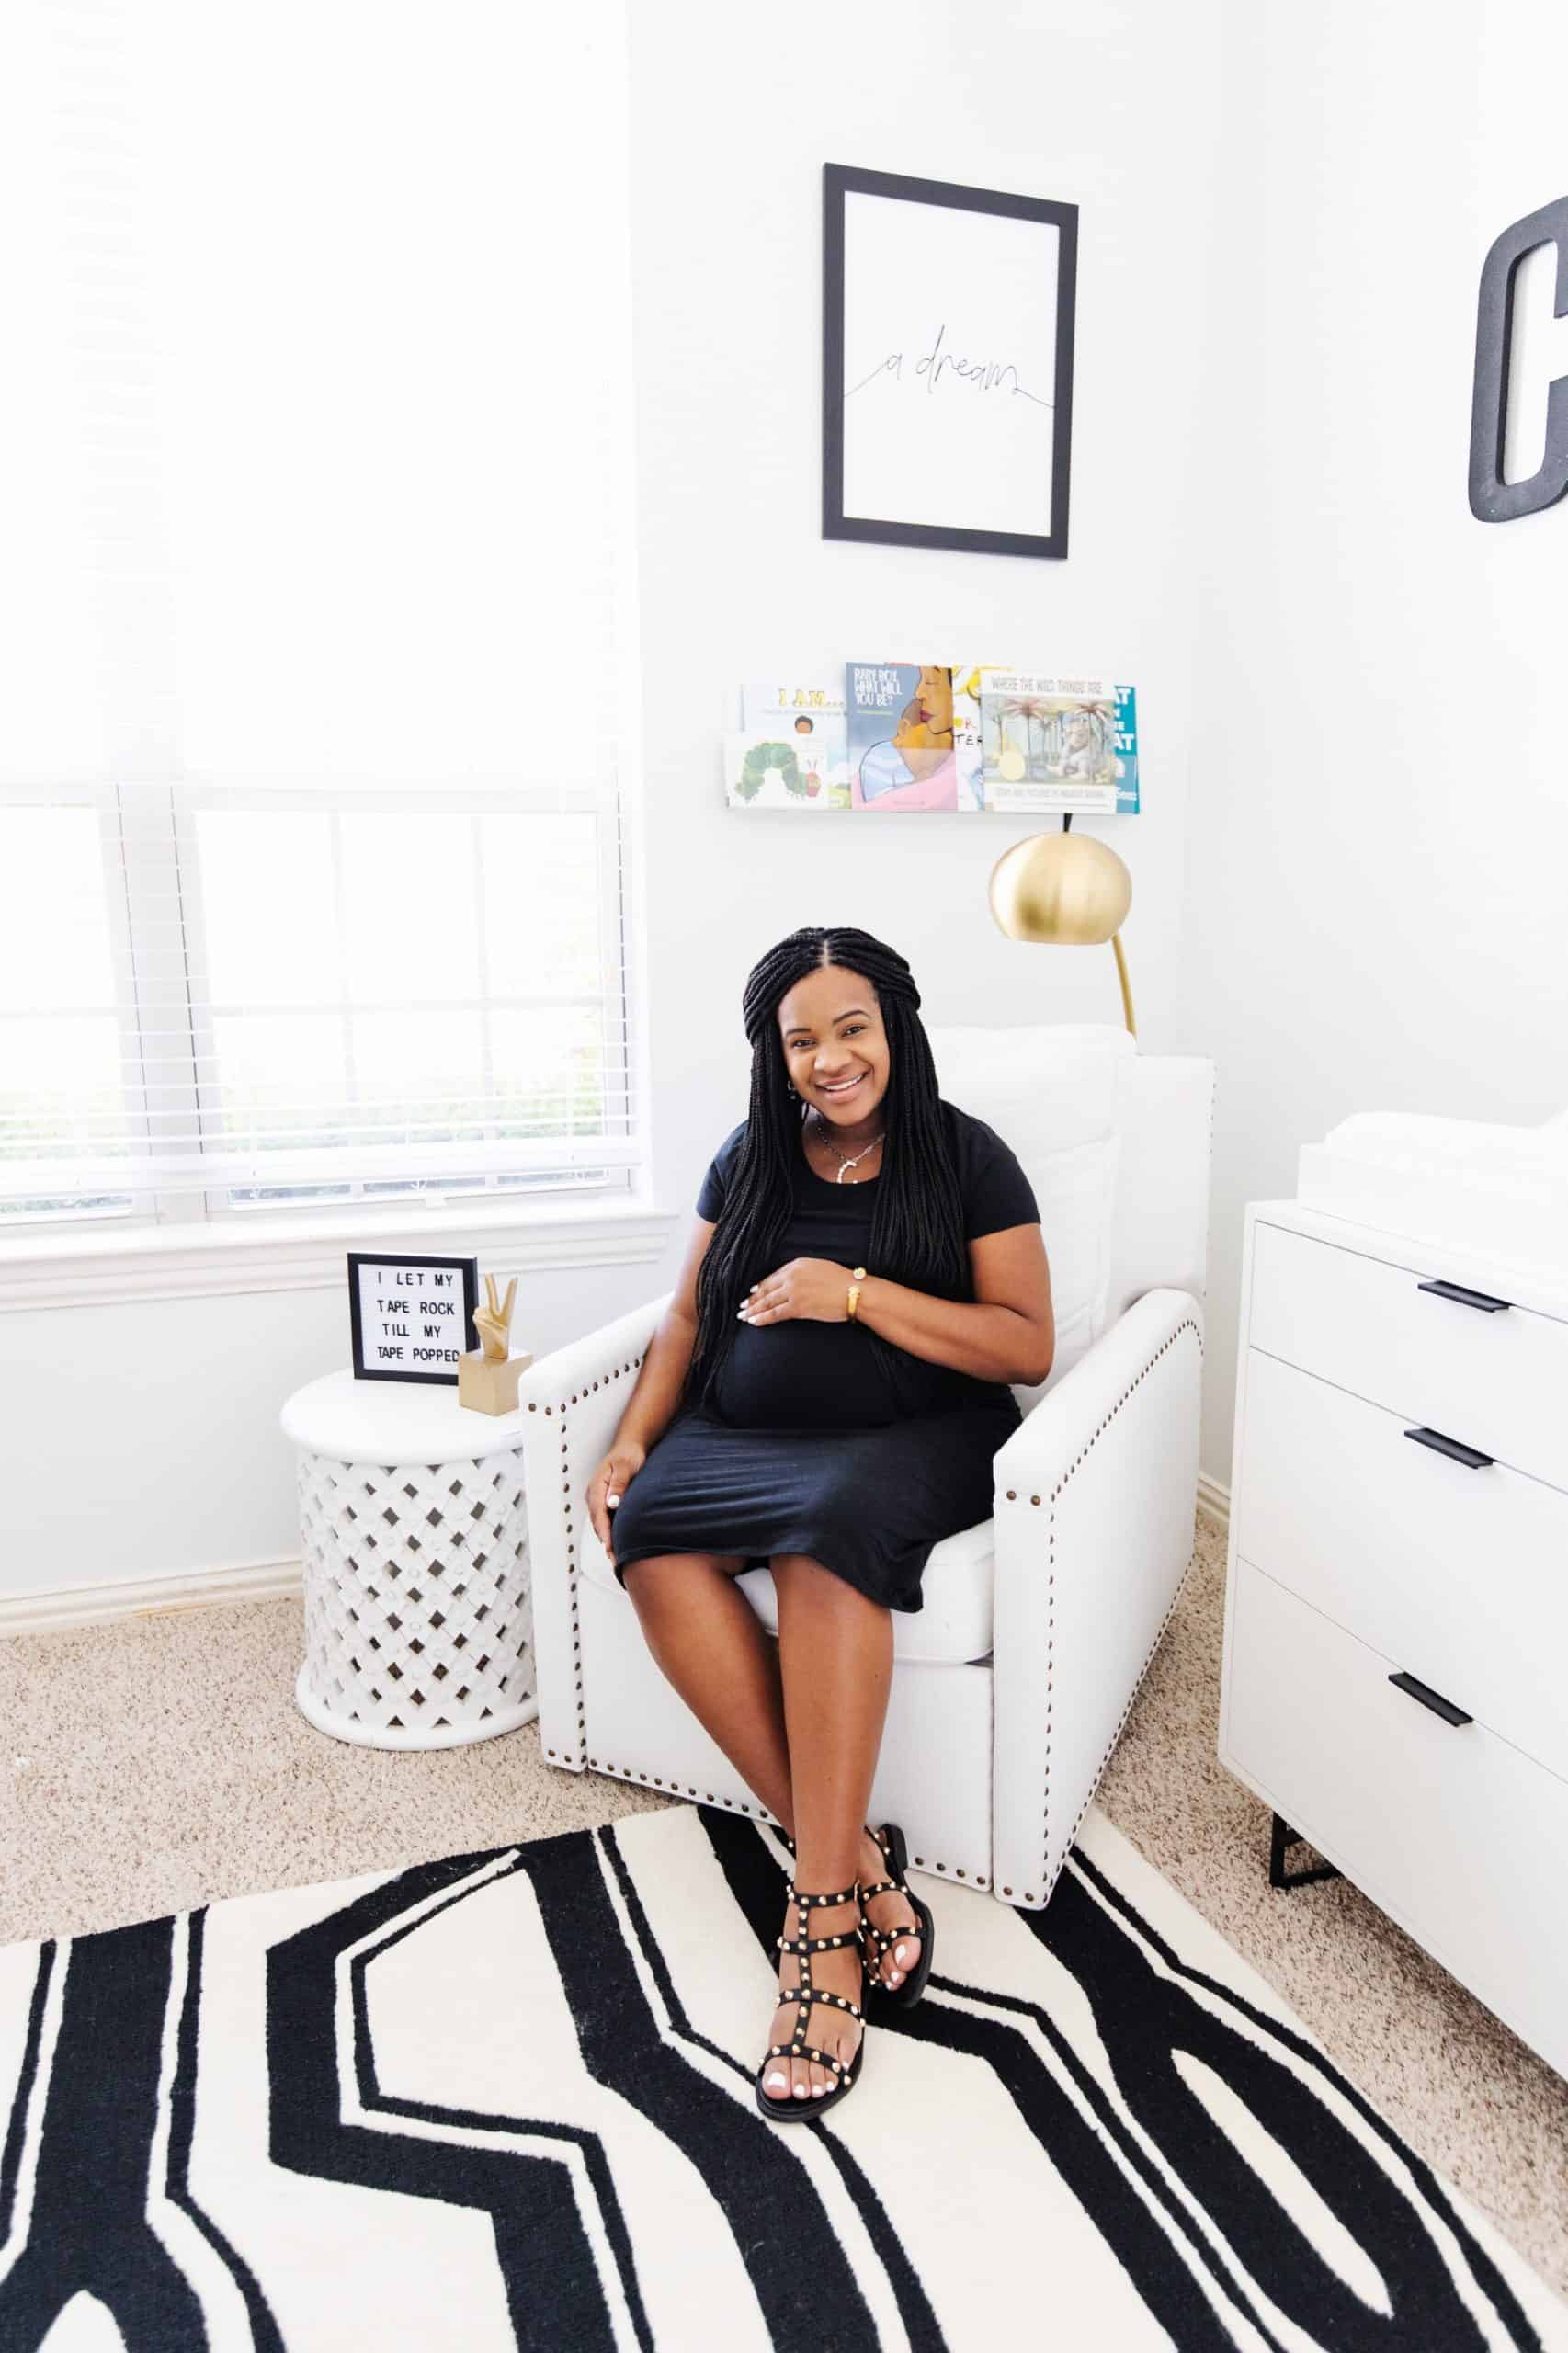 Baby Nursery by popular Dallas life and style blog, Glamorous Versatility: image of pregnant woman wearing a black maternity dress and and black studded sandals while sitting in a white glider chair in a baby nursery decorated with a Ellis Extra Wide Dresser And Topper Set, Knox Convertible Crib, Tyler Square Arm Swivel Glider & Recliner, west elm x pbk Mid-Century Narrow Tower Bookcase, Stella Side Table, Lullaby® Supreme Crib Mattress, Black and White Storage Collection (Large), Acrylic and Metallic Nursery Storage (Diaper Caddy & Table Storage), Metal Prism Storage, Acrylic Wall Shelf, Ubbi Diaper Pails, west elm x pbk Petite Arc Metal Floor Lamp, west elm x pbk Mid Century Puppy Plush Rocker, Coco Rug, Kingston Pendant, Finn + Emma® Mischief the Mouse Big Buddy & Rattle Buddy, Sleep Tight Baby Blanket, Lightning Pillow Arrow Sham, Black Brush Stroke Boppy® Nursing & Infant Support Pillow & Slipcover, Window Pane Muslin Swaddle Set, Chamois Broken Arrow Baby Blanket, Organic Black Brushstroke Dot Fitted Crib Sheet, west elm x pbk Organic Matelasse Changing Pad Cover, Modern Letters, Gilded Painted Art, Biggie Smalls Wall Trio, and Rapper's Delight Wall Art by Honeymoon. Hotel